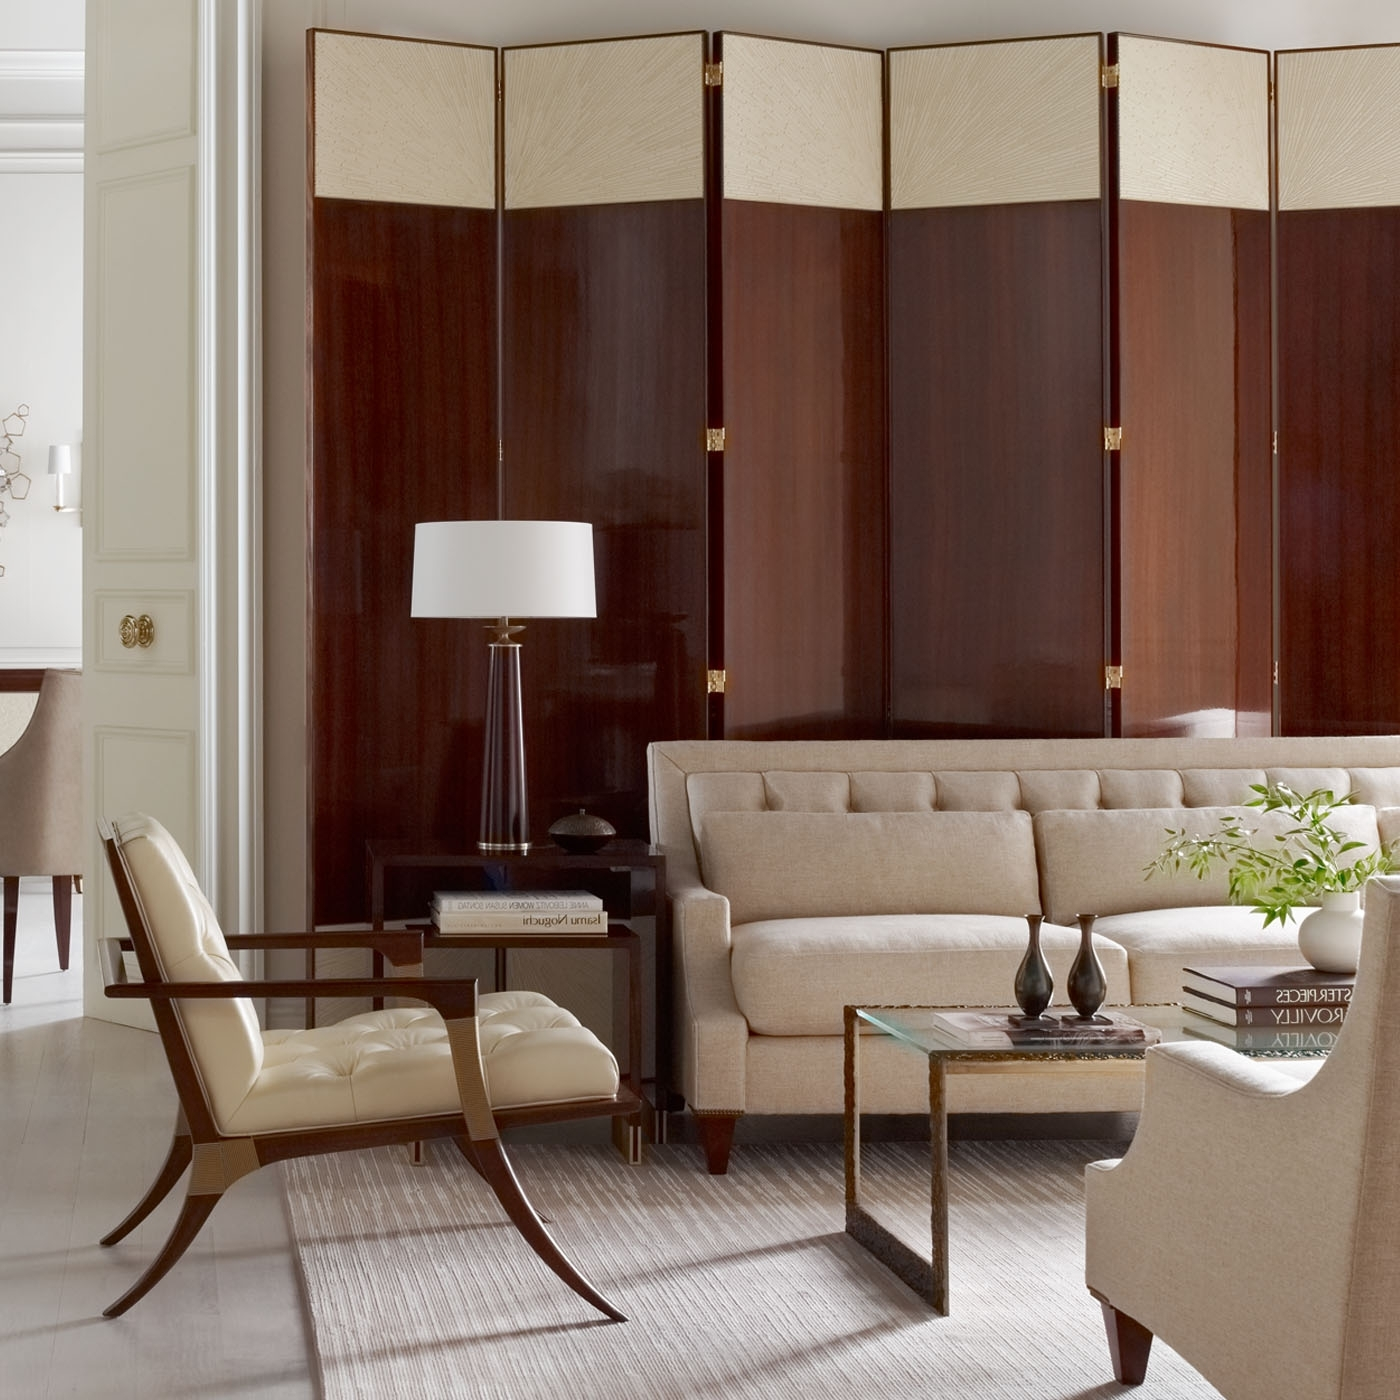 Sofa Chairs With Dining Table Within Latest Chairs – Modern Living Room Furniture & Accessories (View 13 of 15)